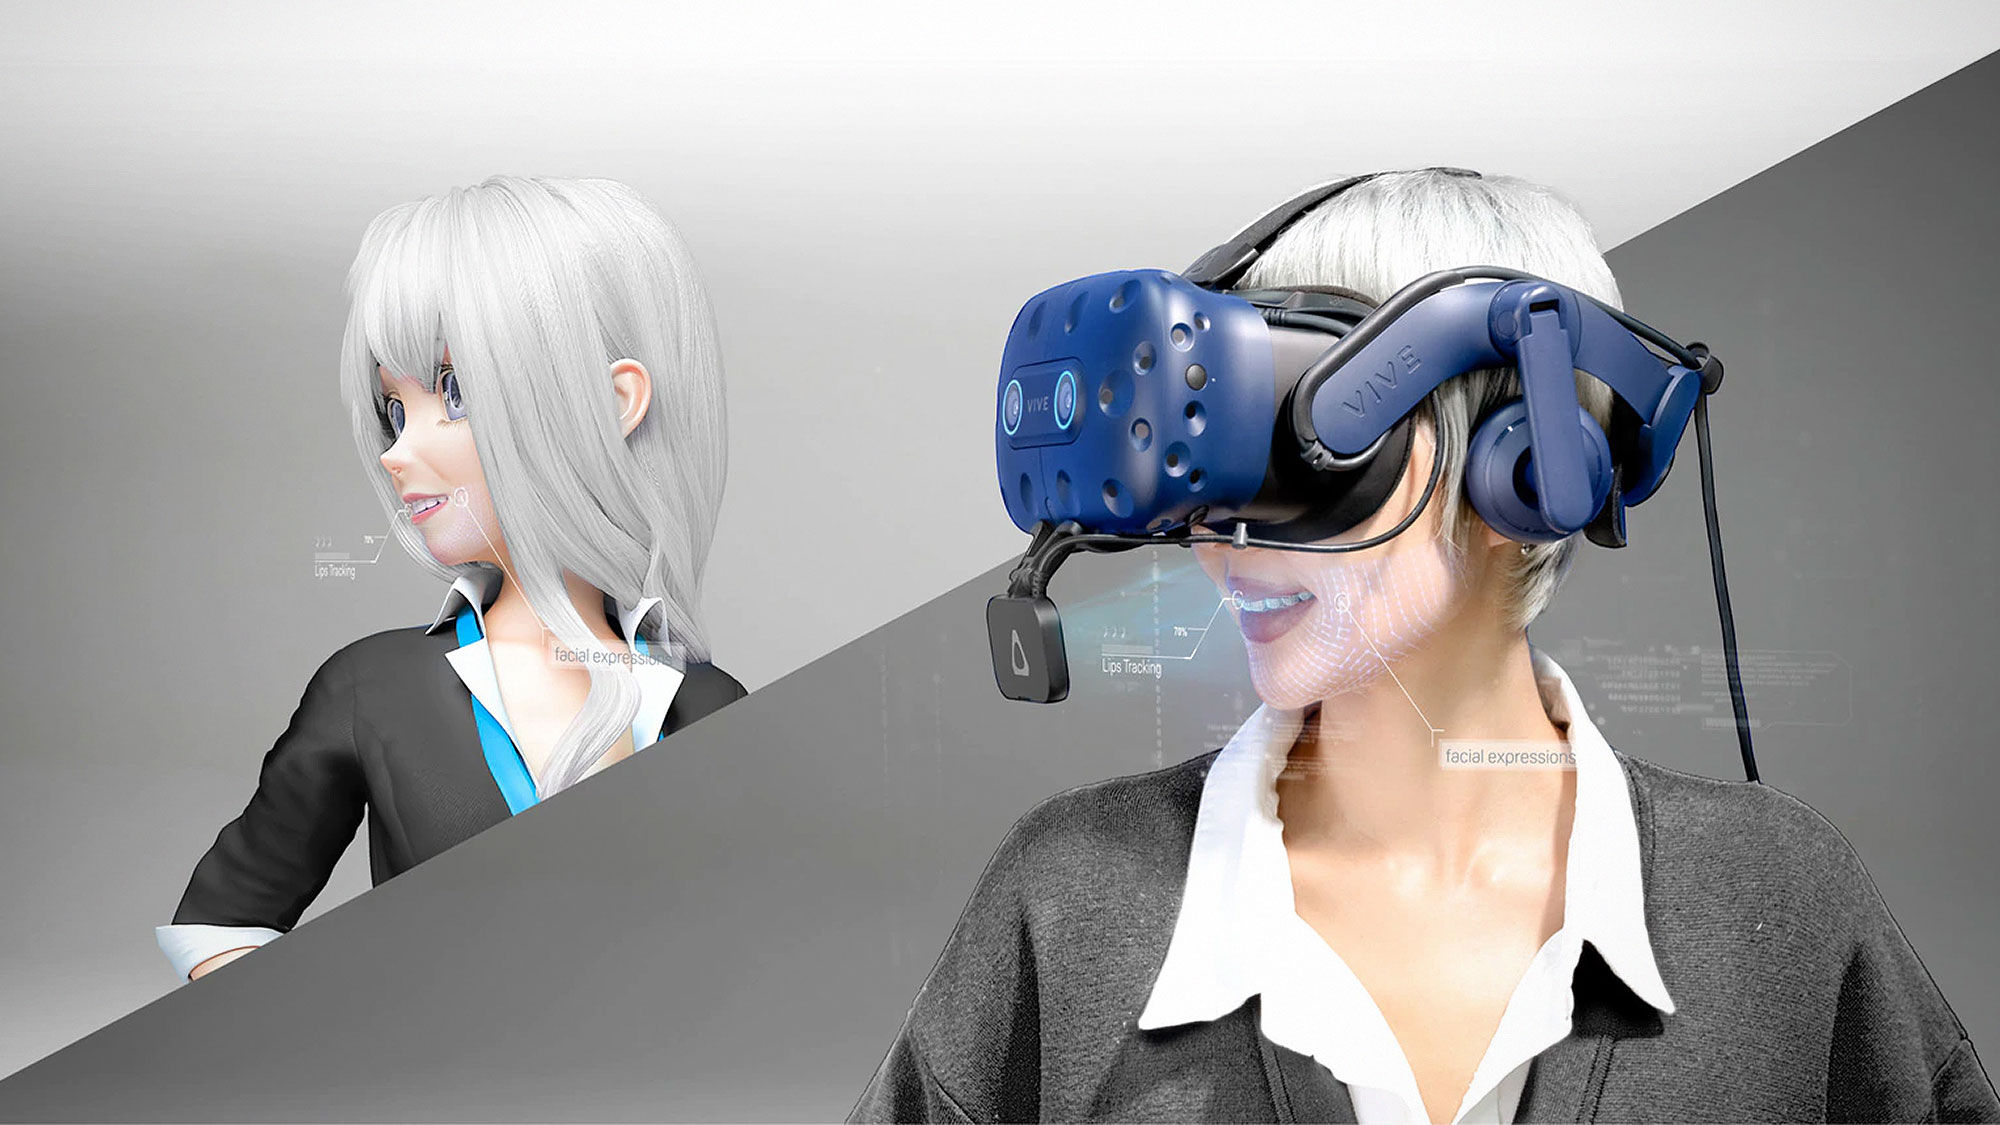 HTC VIVE Tracker (3.0) and Facial Tracker for VR